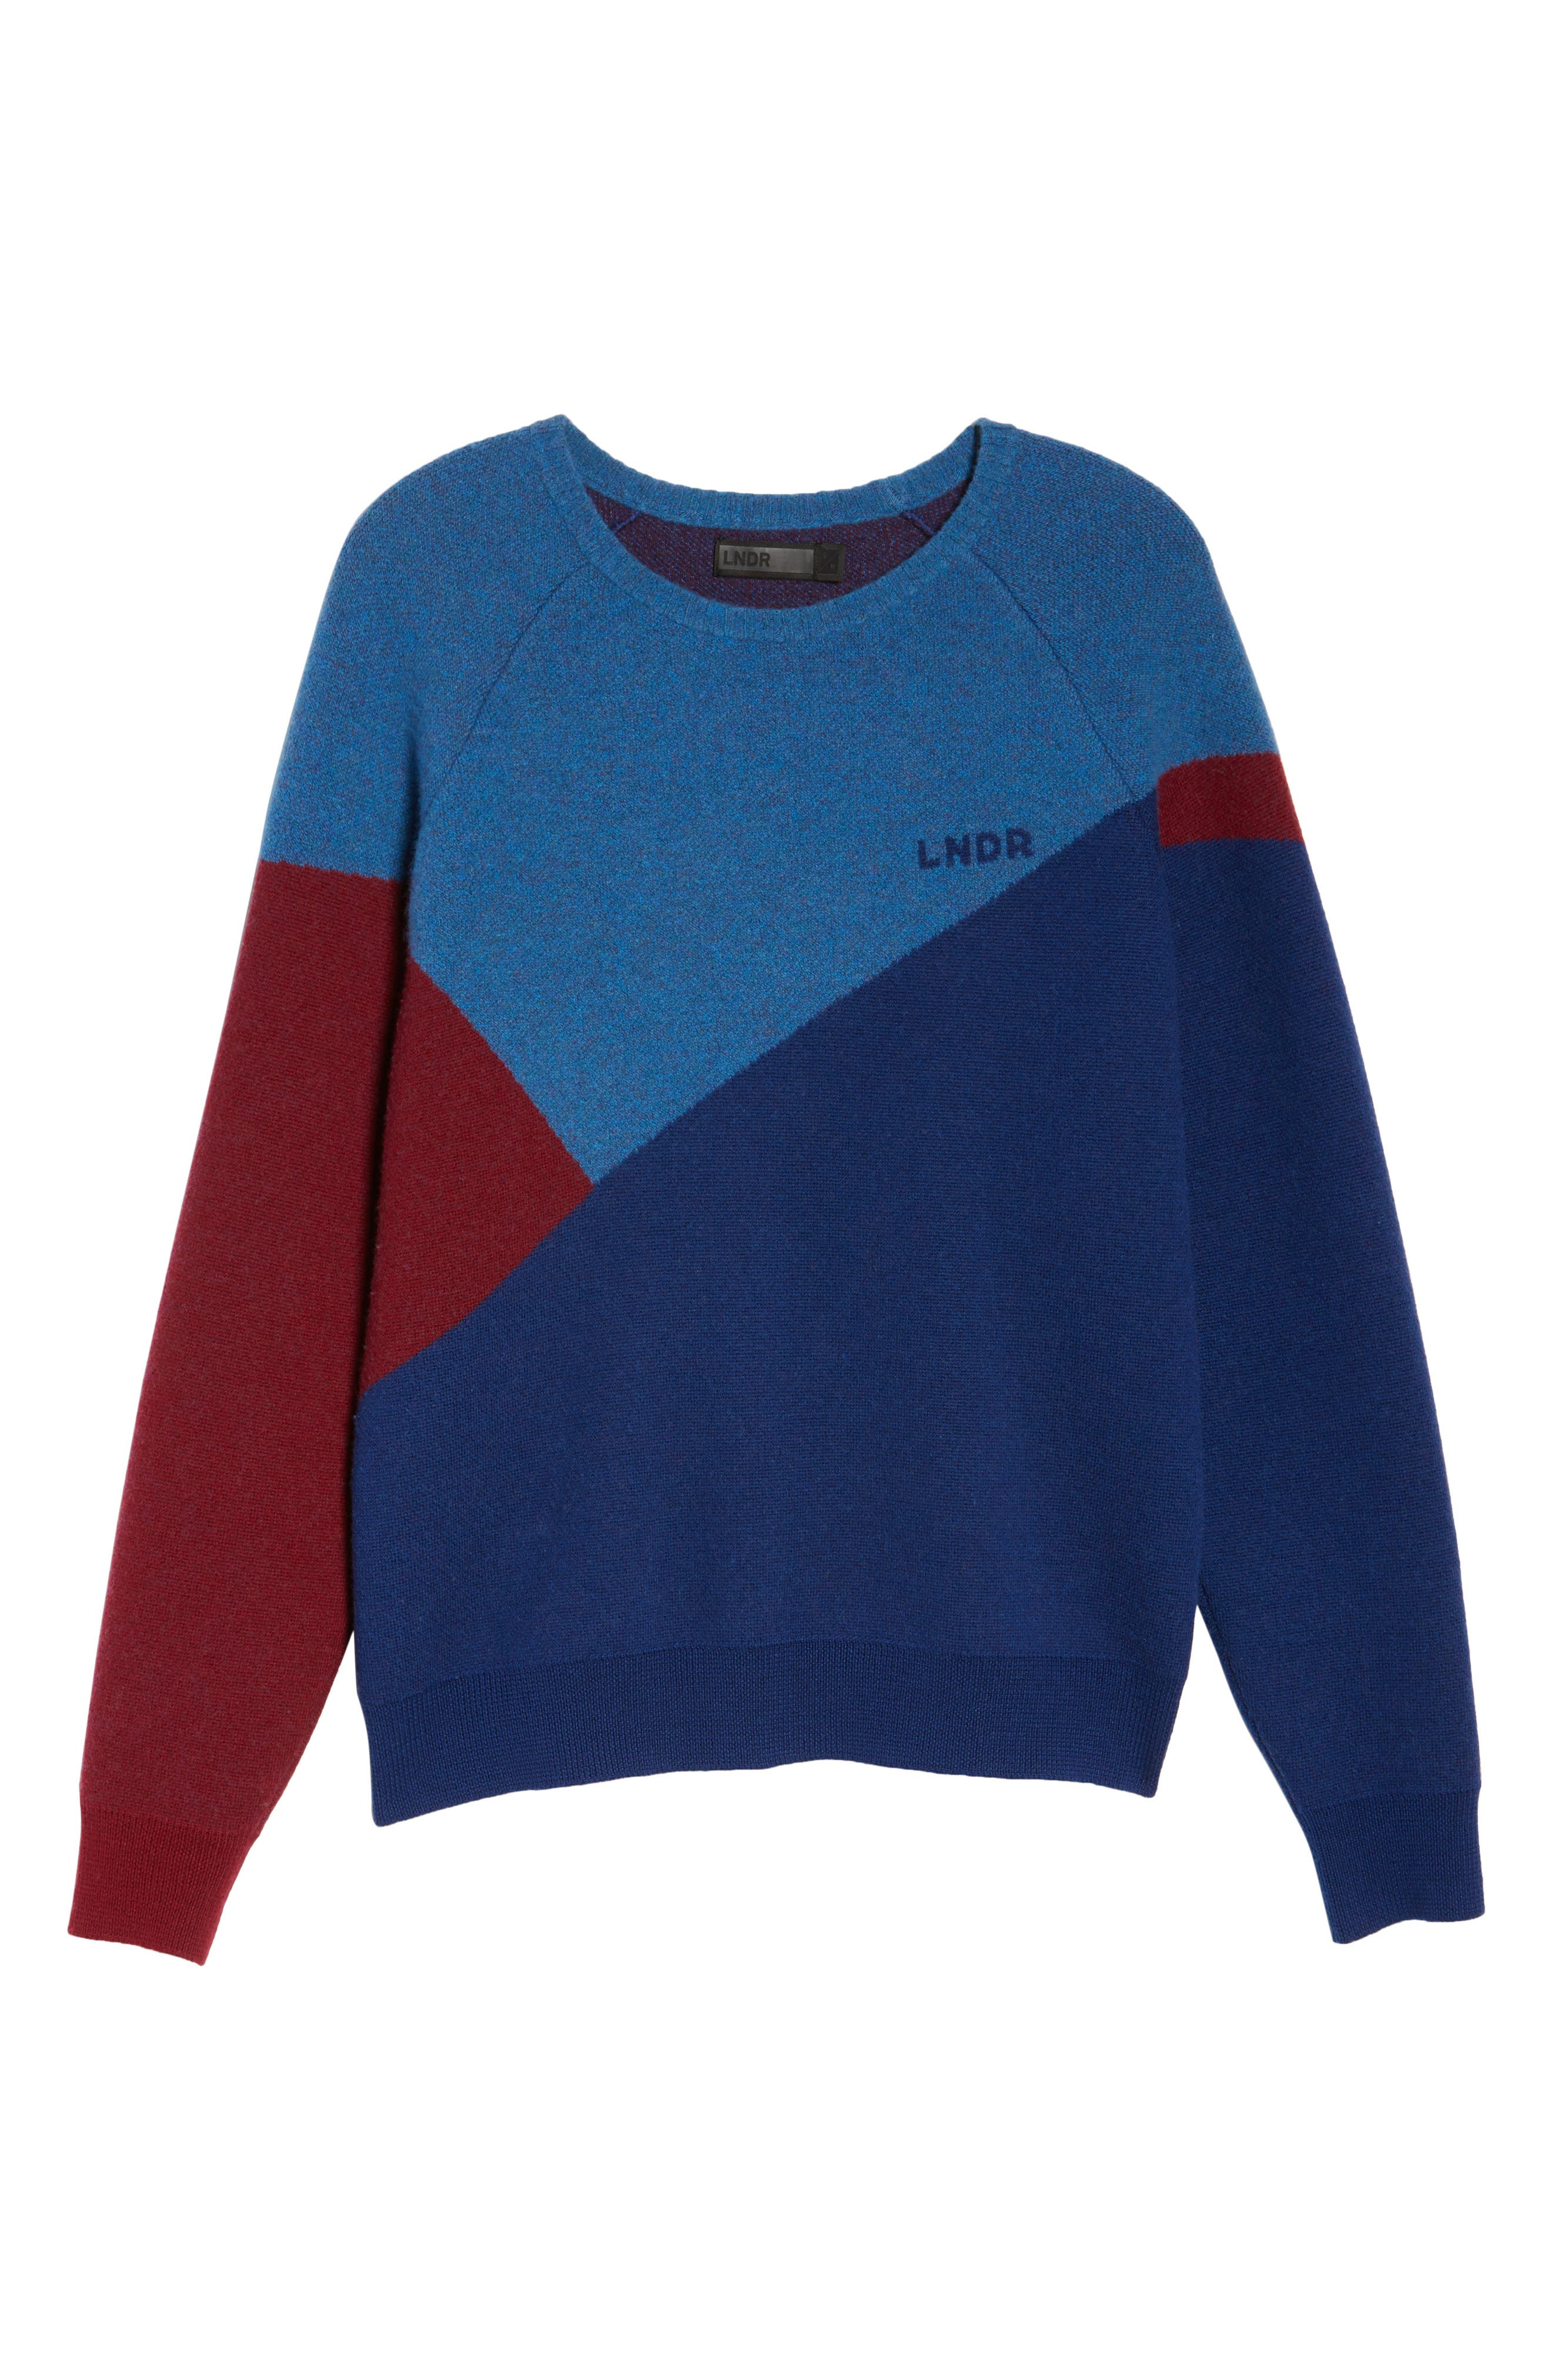 Winter Waterboy Sweater,                             Alternate thumbnail 6, color,